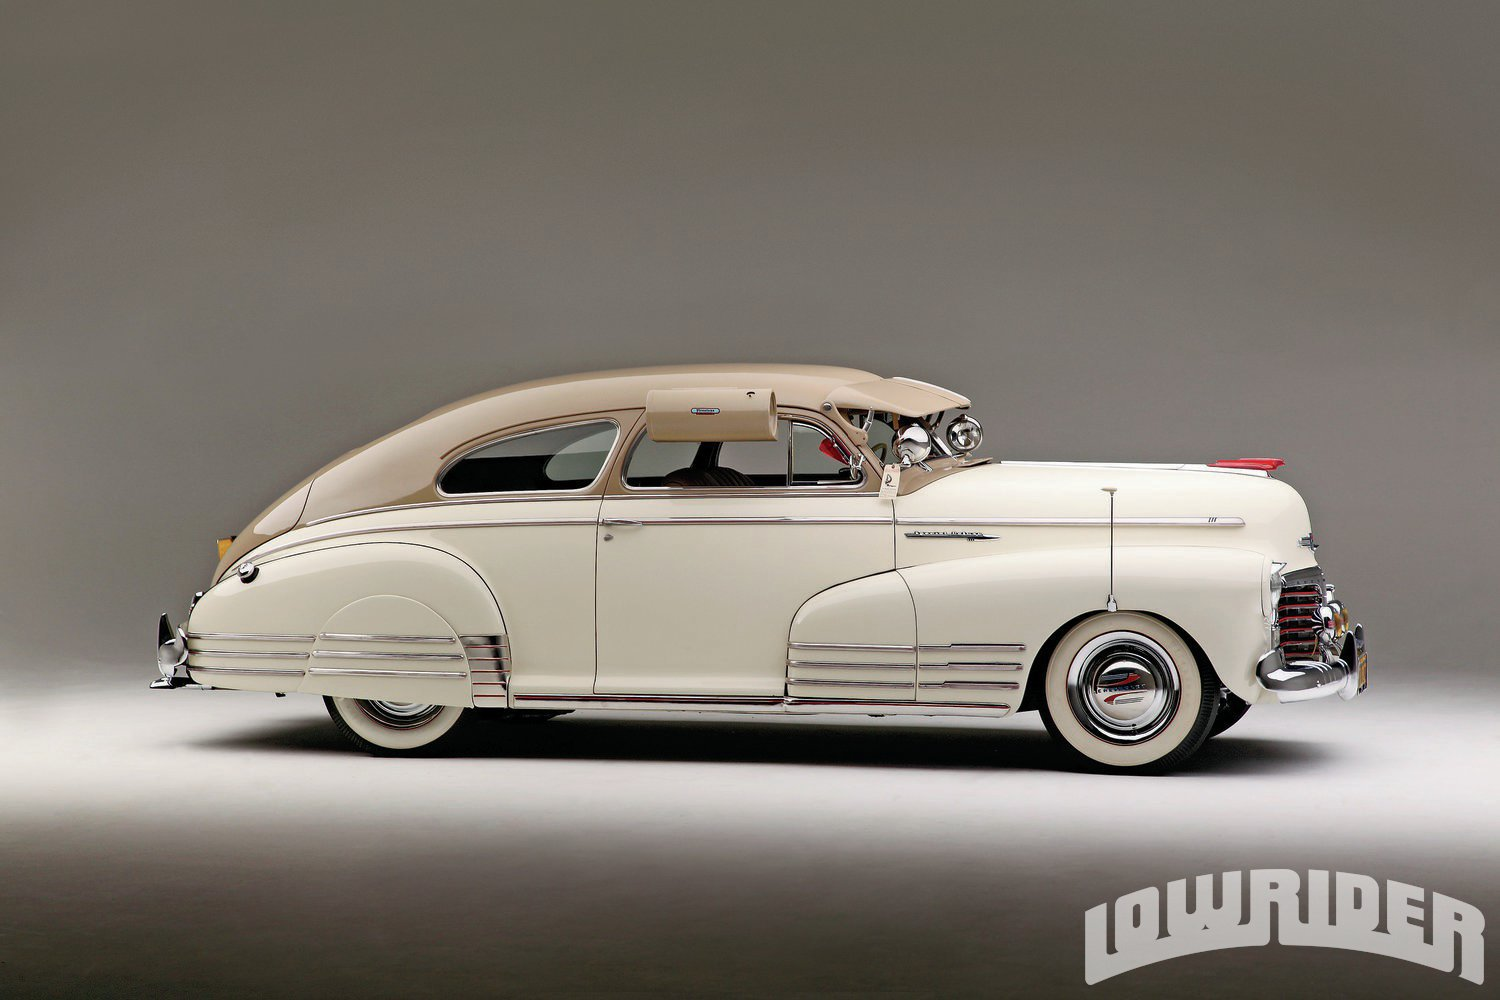 Used 2014 Chevy Impala >> 1942 Chevrolet Special Deluxe - Lowrider Magazine